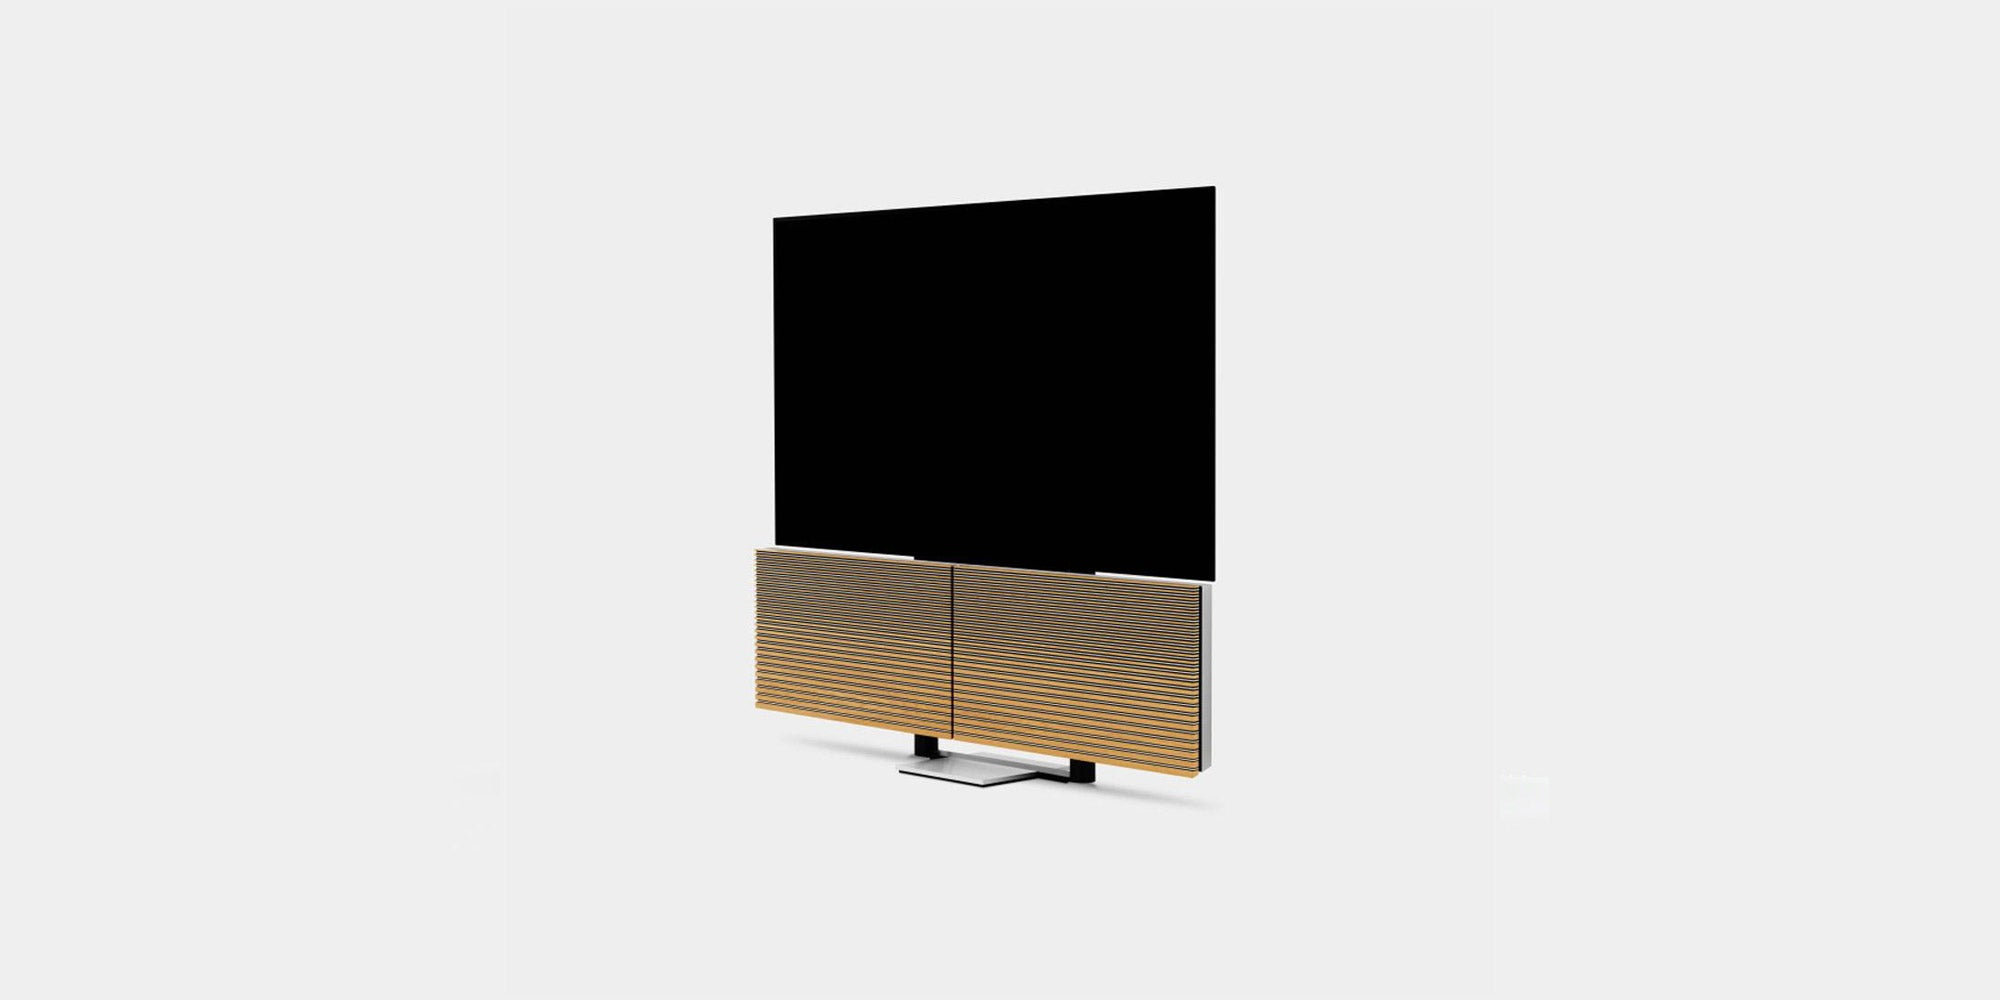 BeoVision harmony is a luxury oled TV for home cinema use